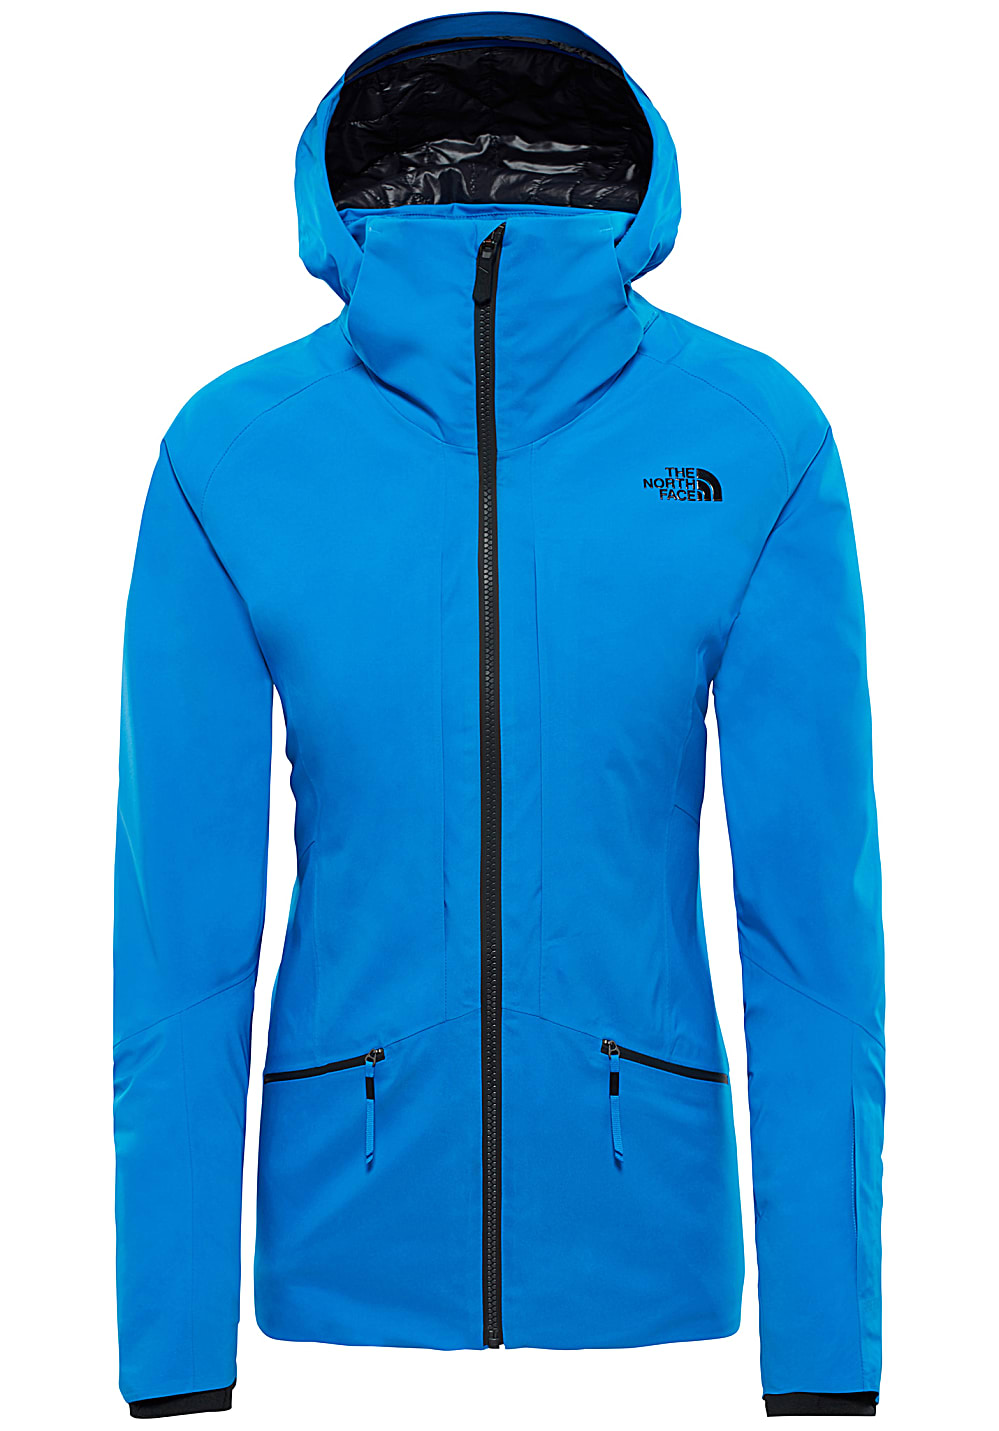 1ccc93494 THE NORTH FACE Anonym - Ski Jacket for Women - Blue